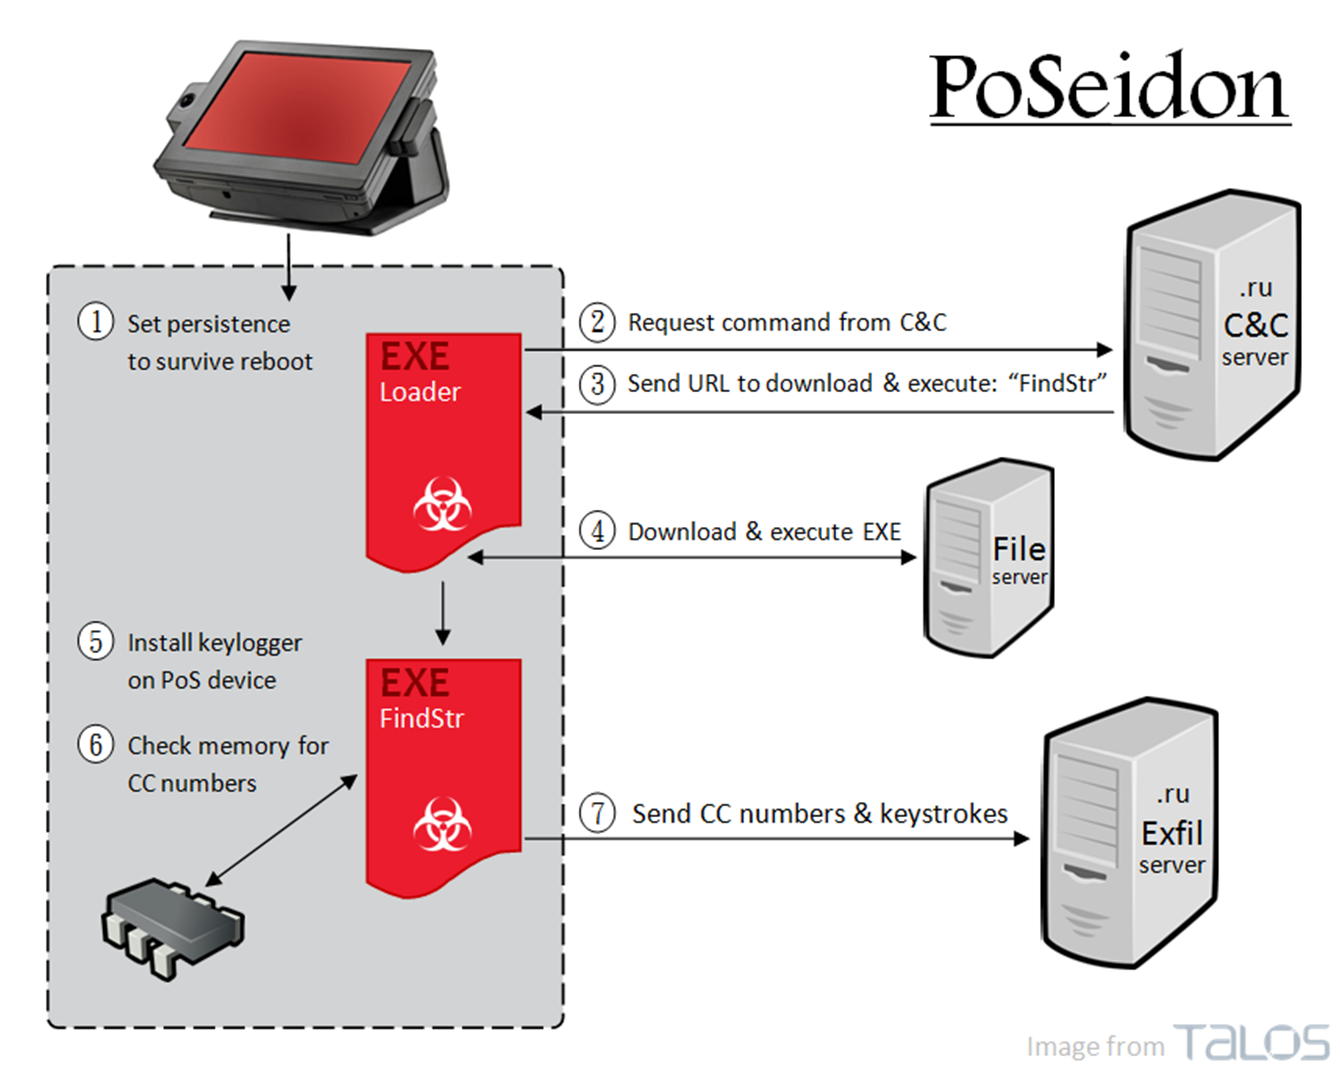 New malware poseidon attacks point of sale systems rit poseidon consists of 3 parts a keylogger a loader and a memory scraper the keylogger is designed to steal the credentials from logmein logins ccuart Images